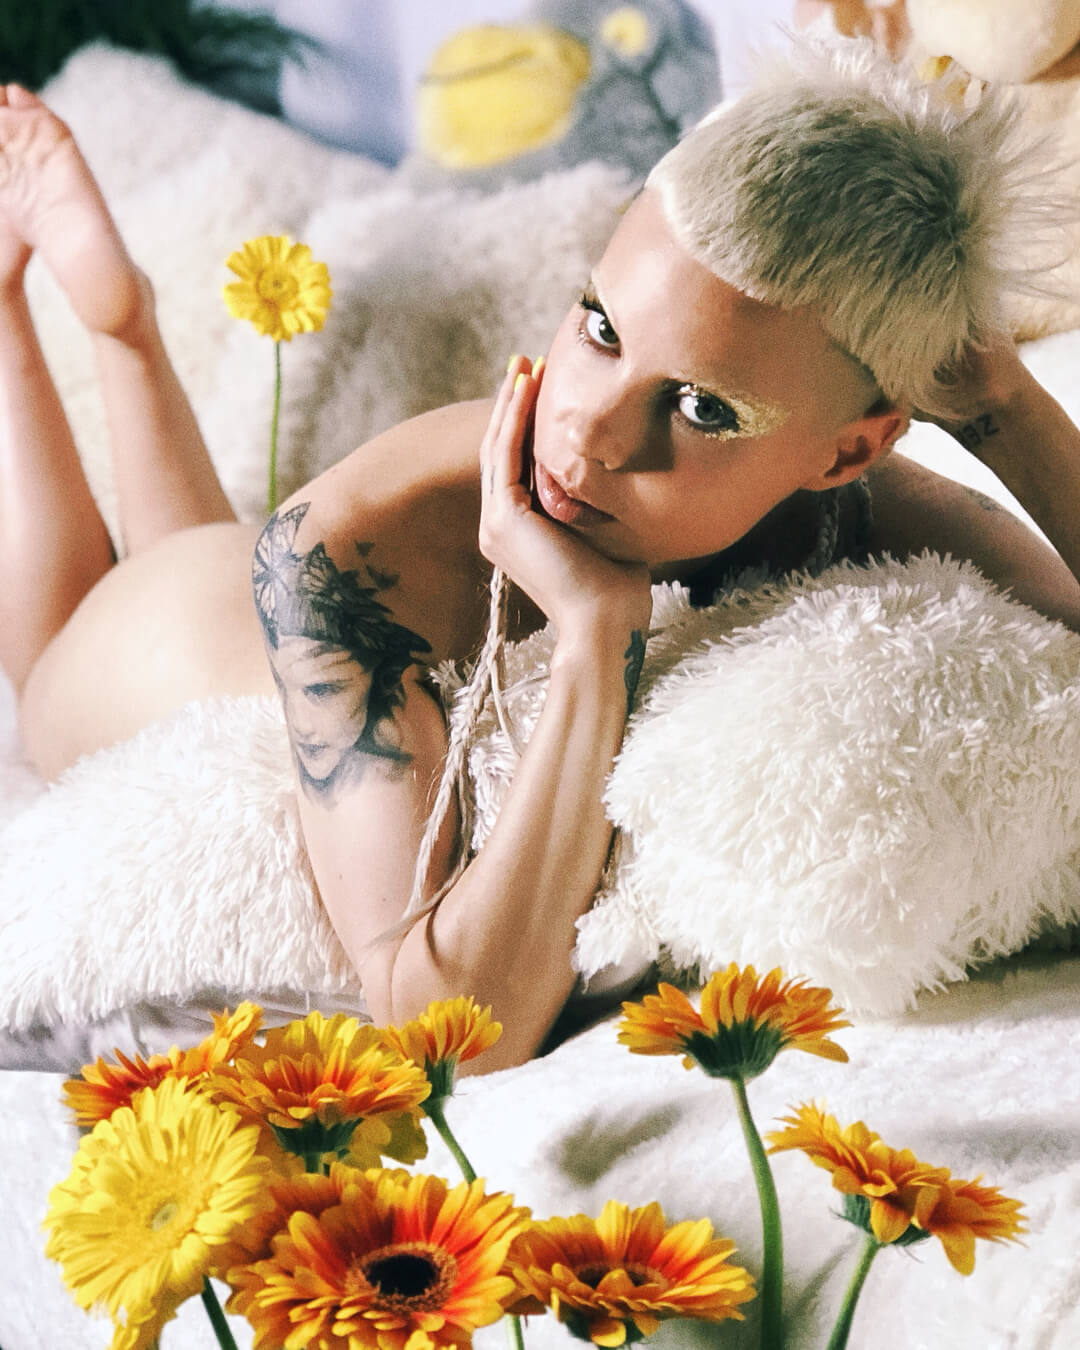 37 Sexy Yolandi Visser Feet Pictures Are Too Much For You